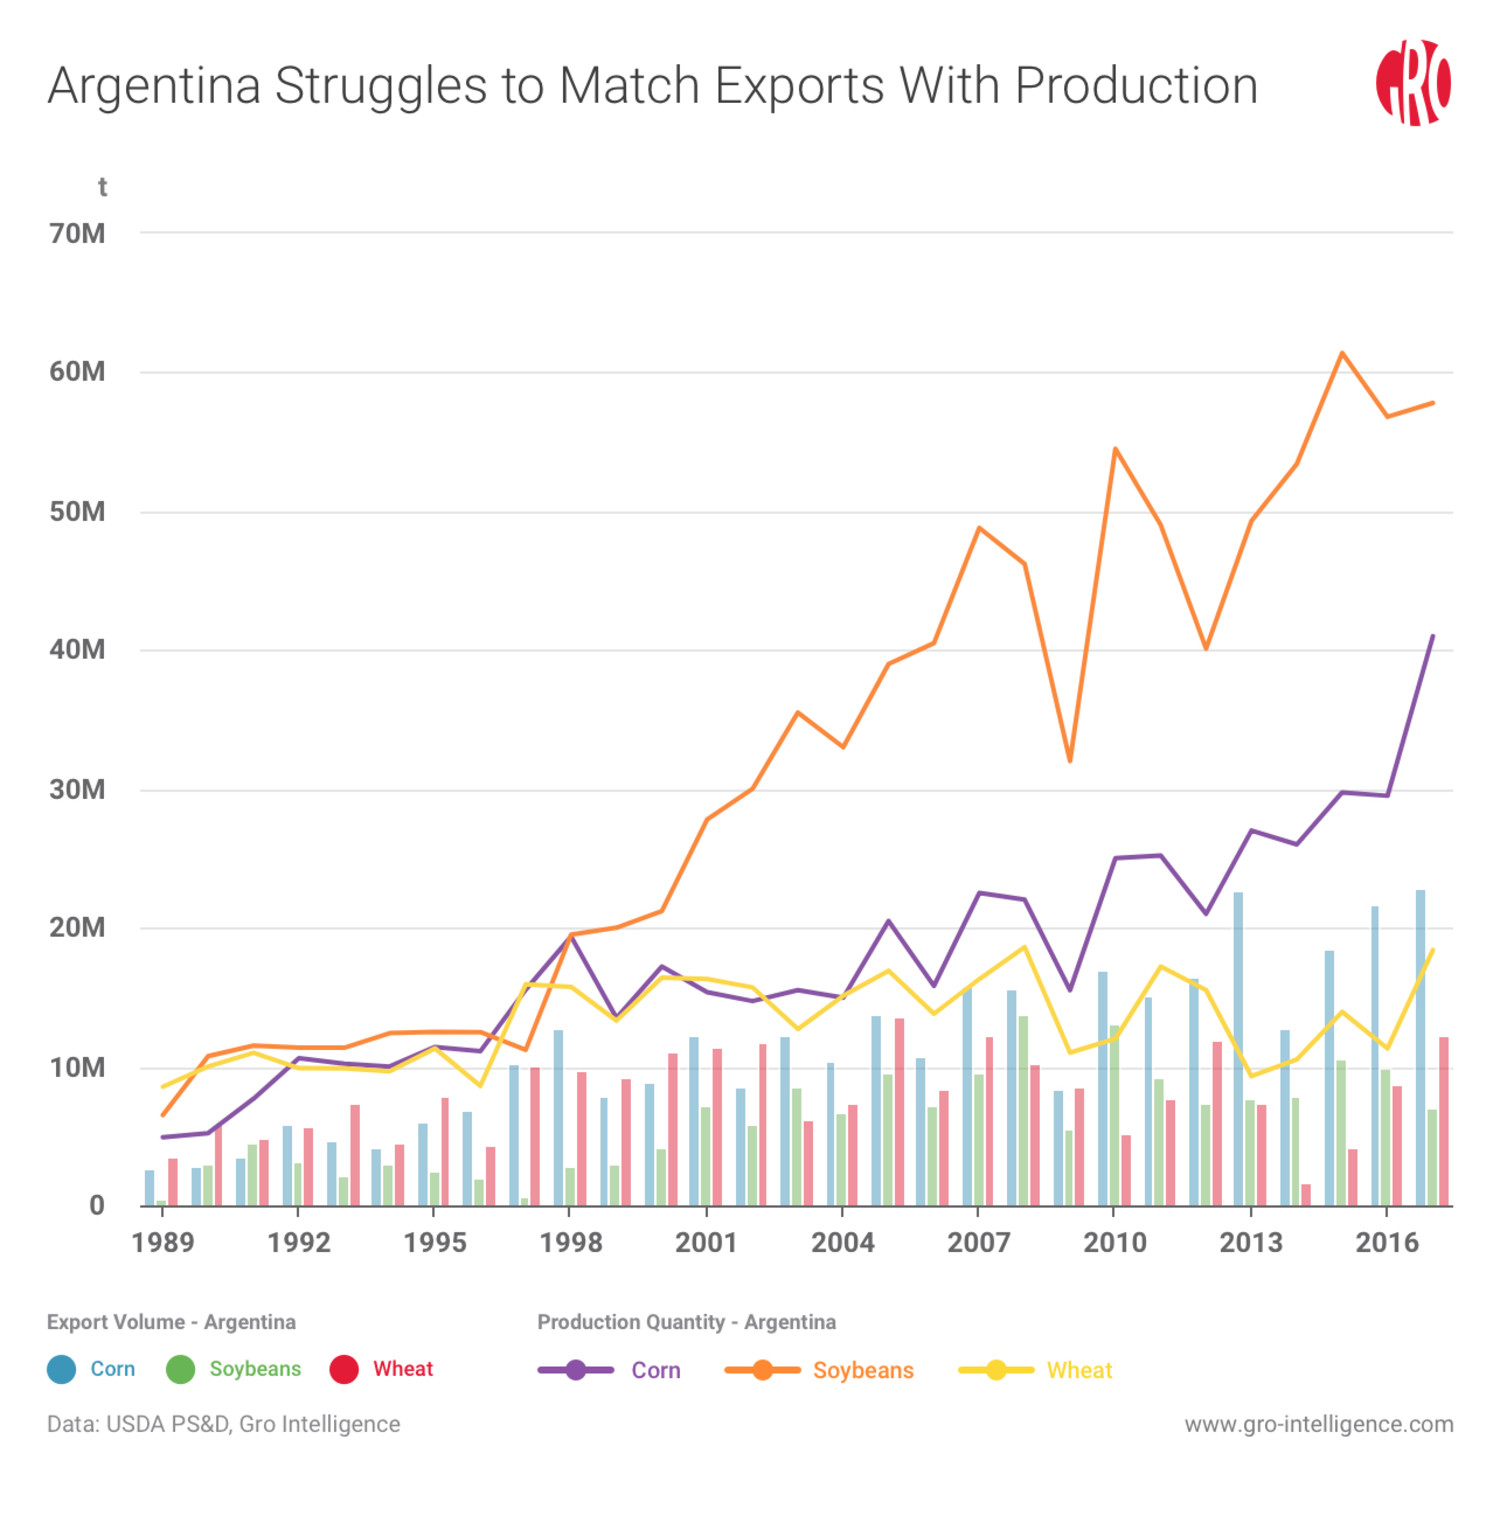 Argentina Struggles to Match Exports With Production Quantity